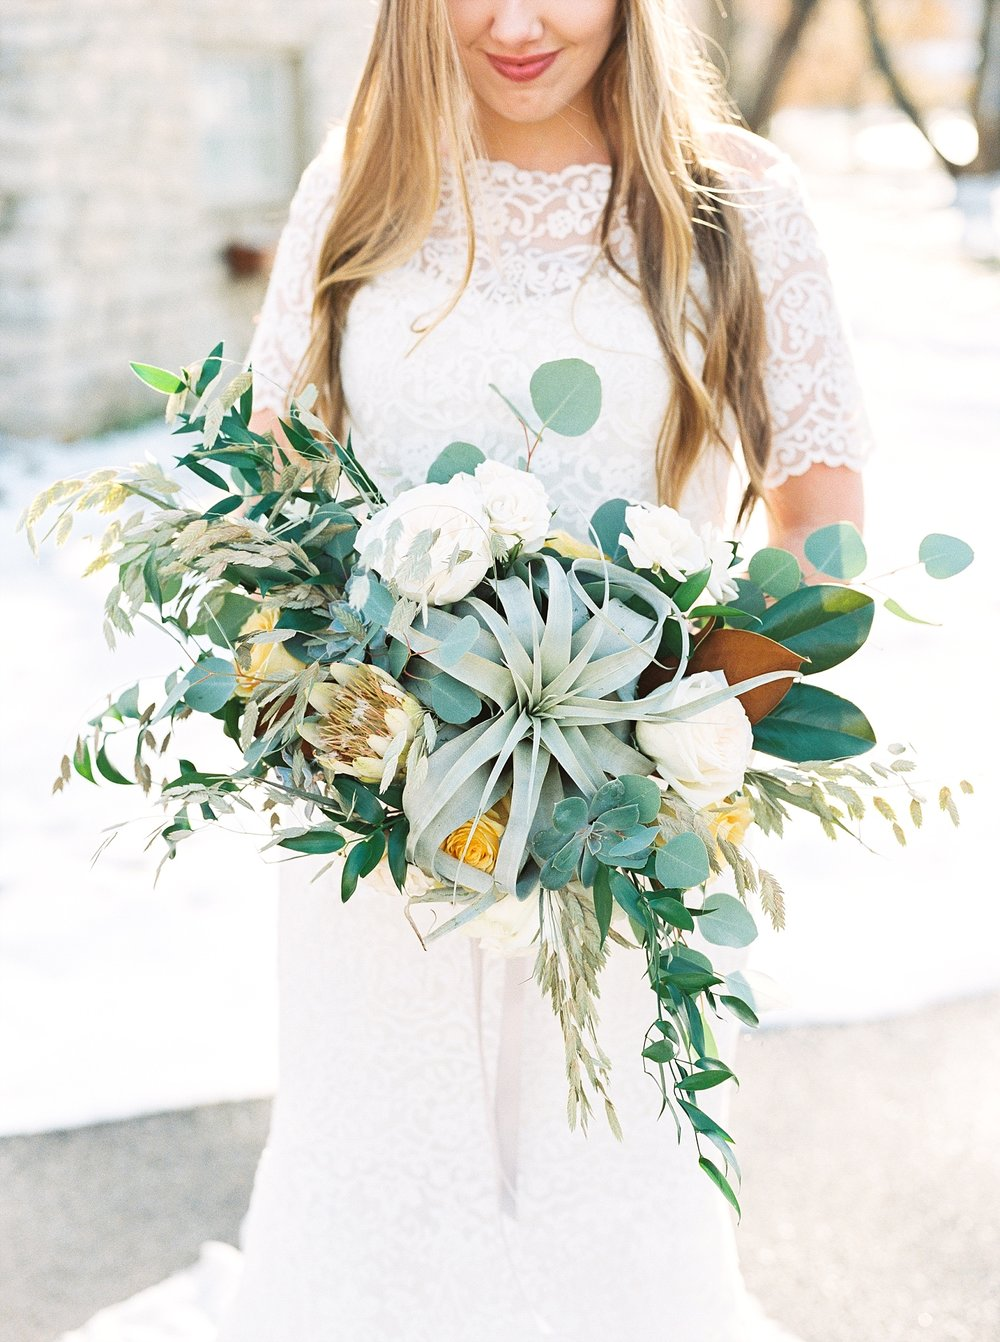 Snowy Winter Wedding at Wildcliff Events Lake With Earthy Jewel Tones and Organic Refined Style by Kelsi Kliethermes Photography Kansas City Missouri Wedding Photographer_0139.jpg